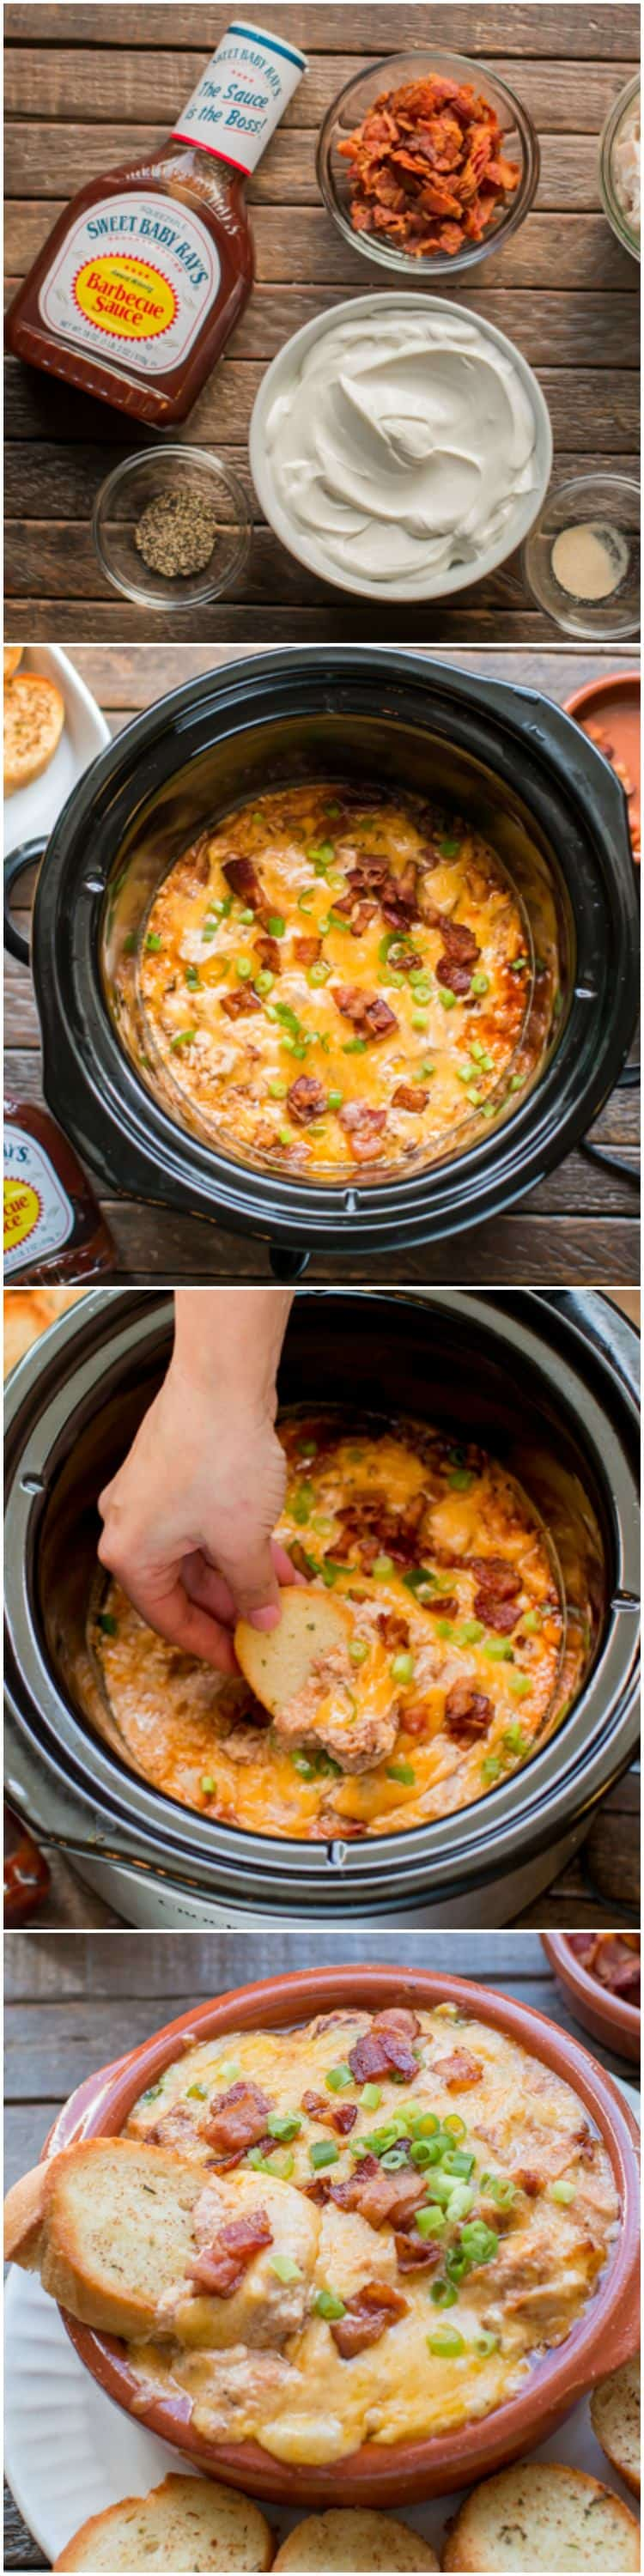 Slow Cooker Bacon Barbecue Chicken Dip